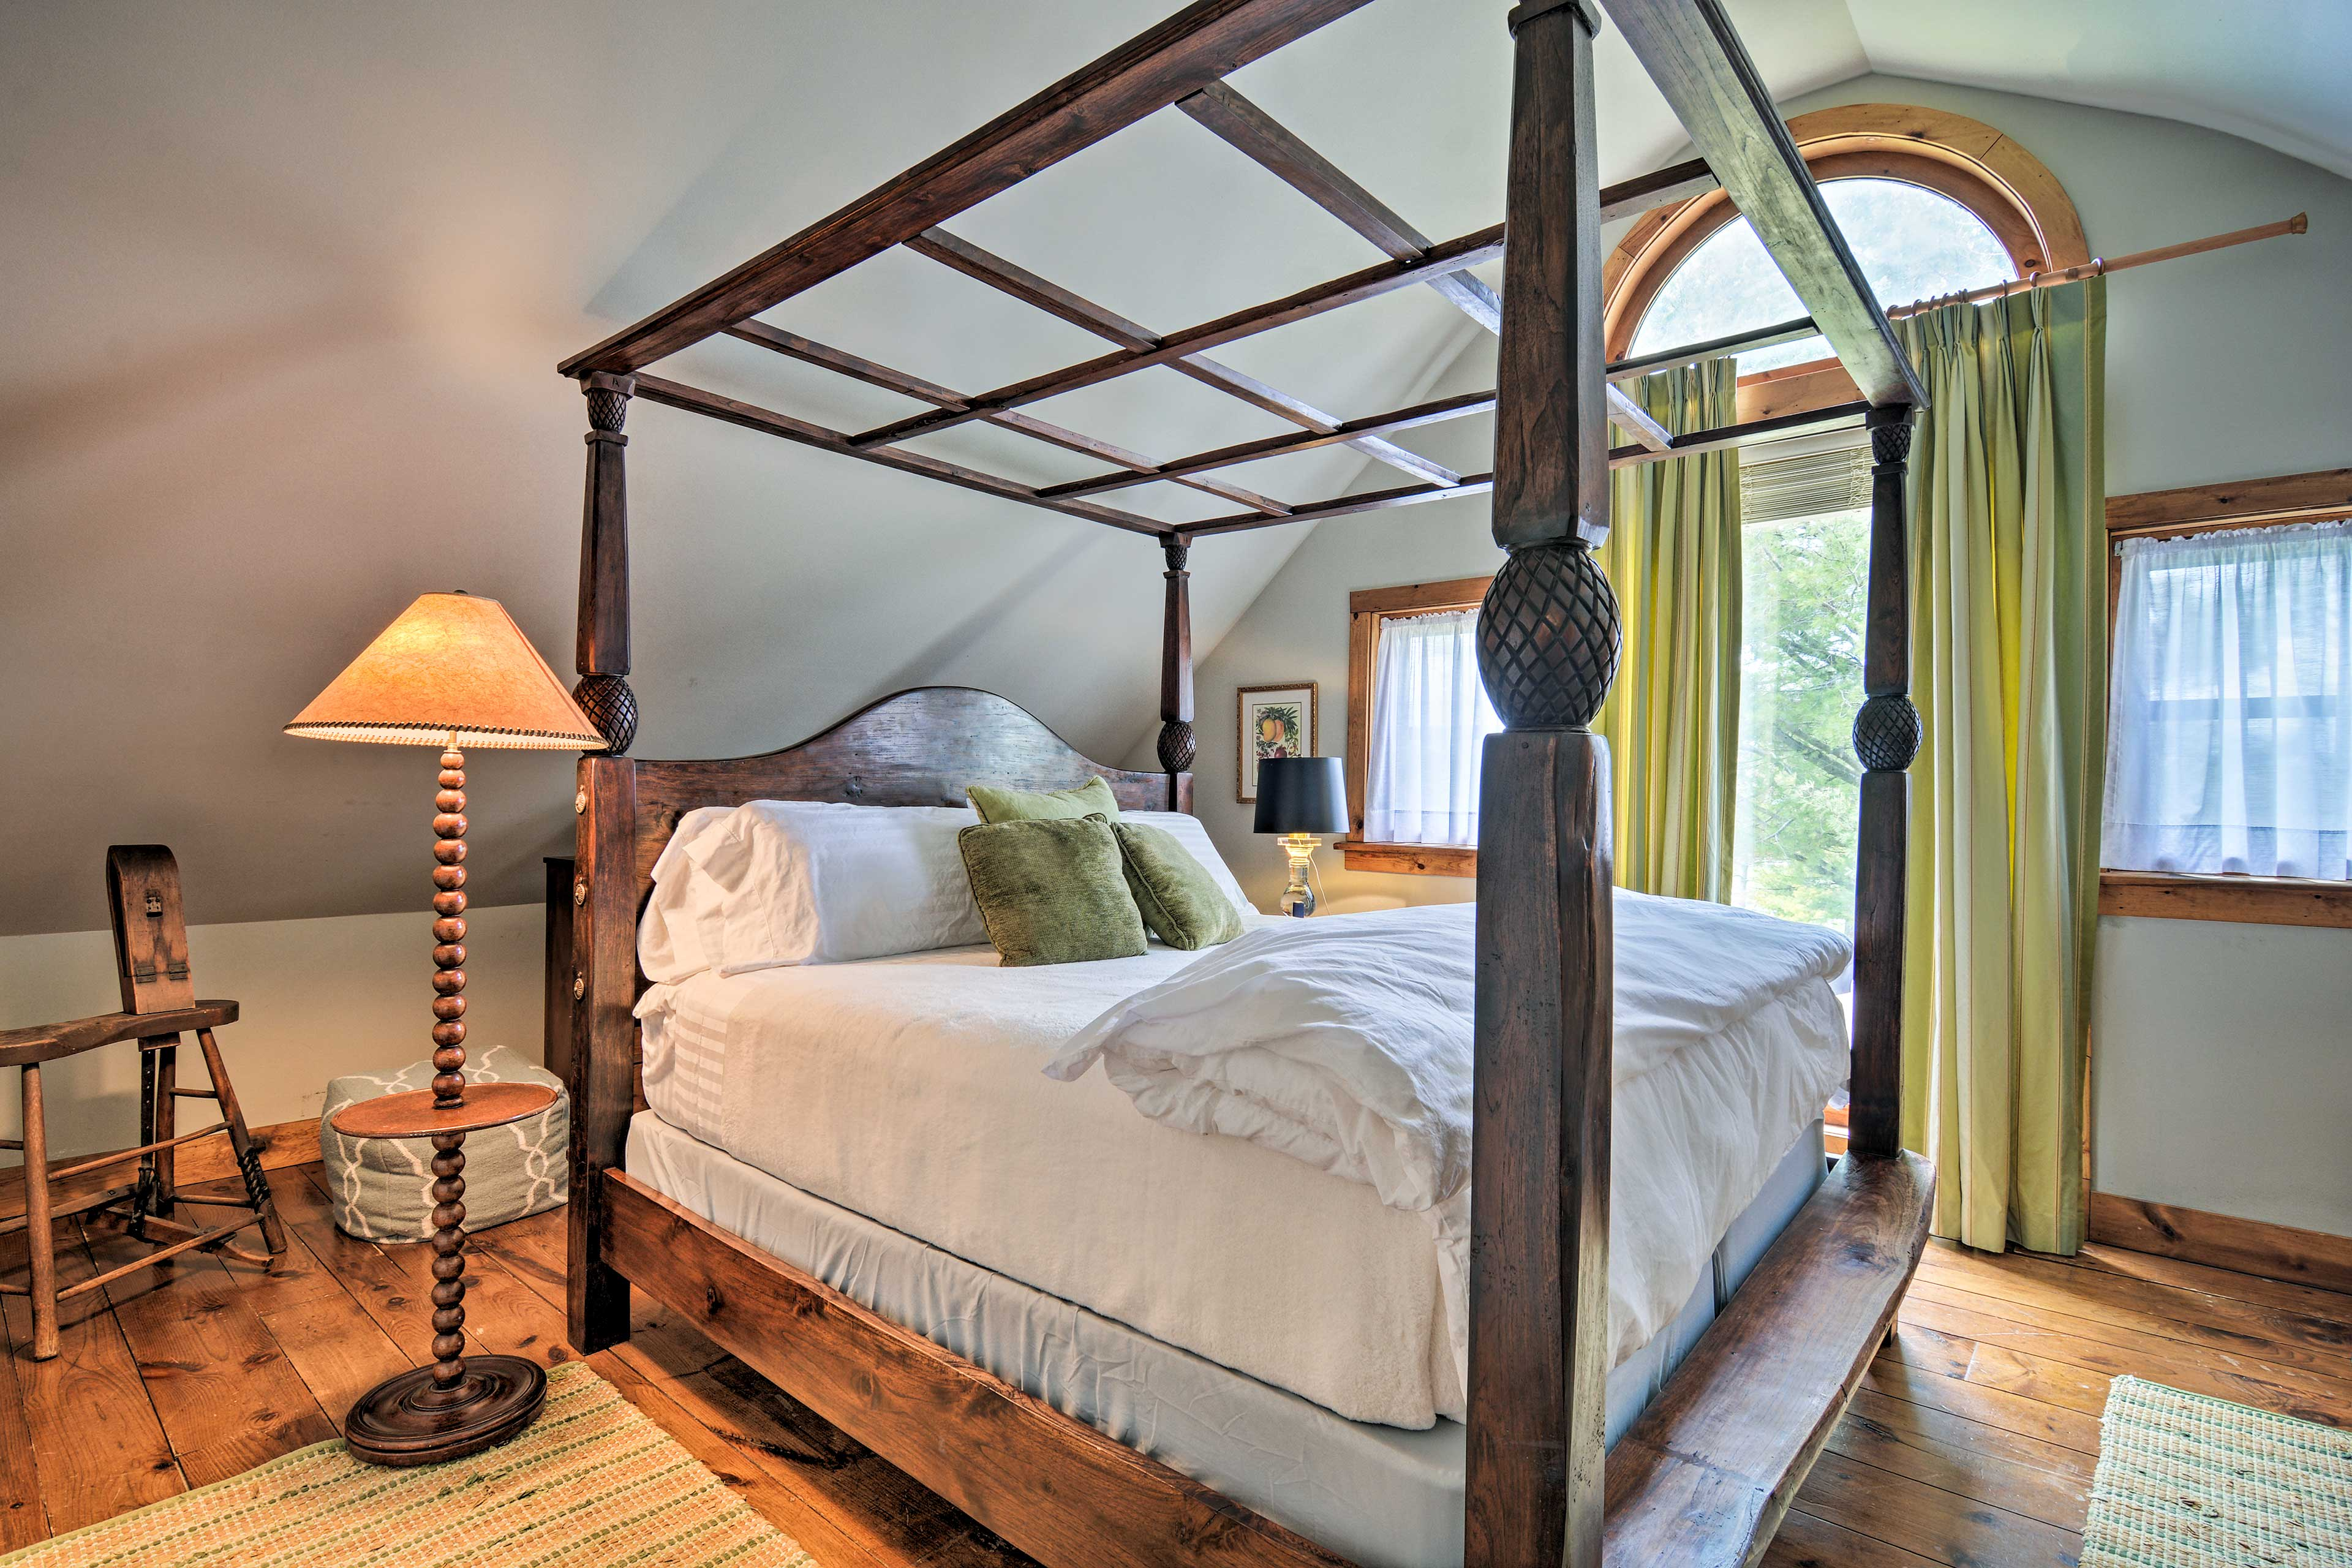 Crawl into this luxurious 4-poster bed!